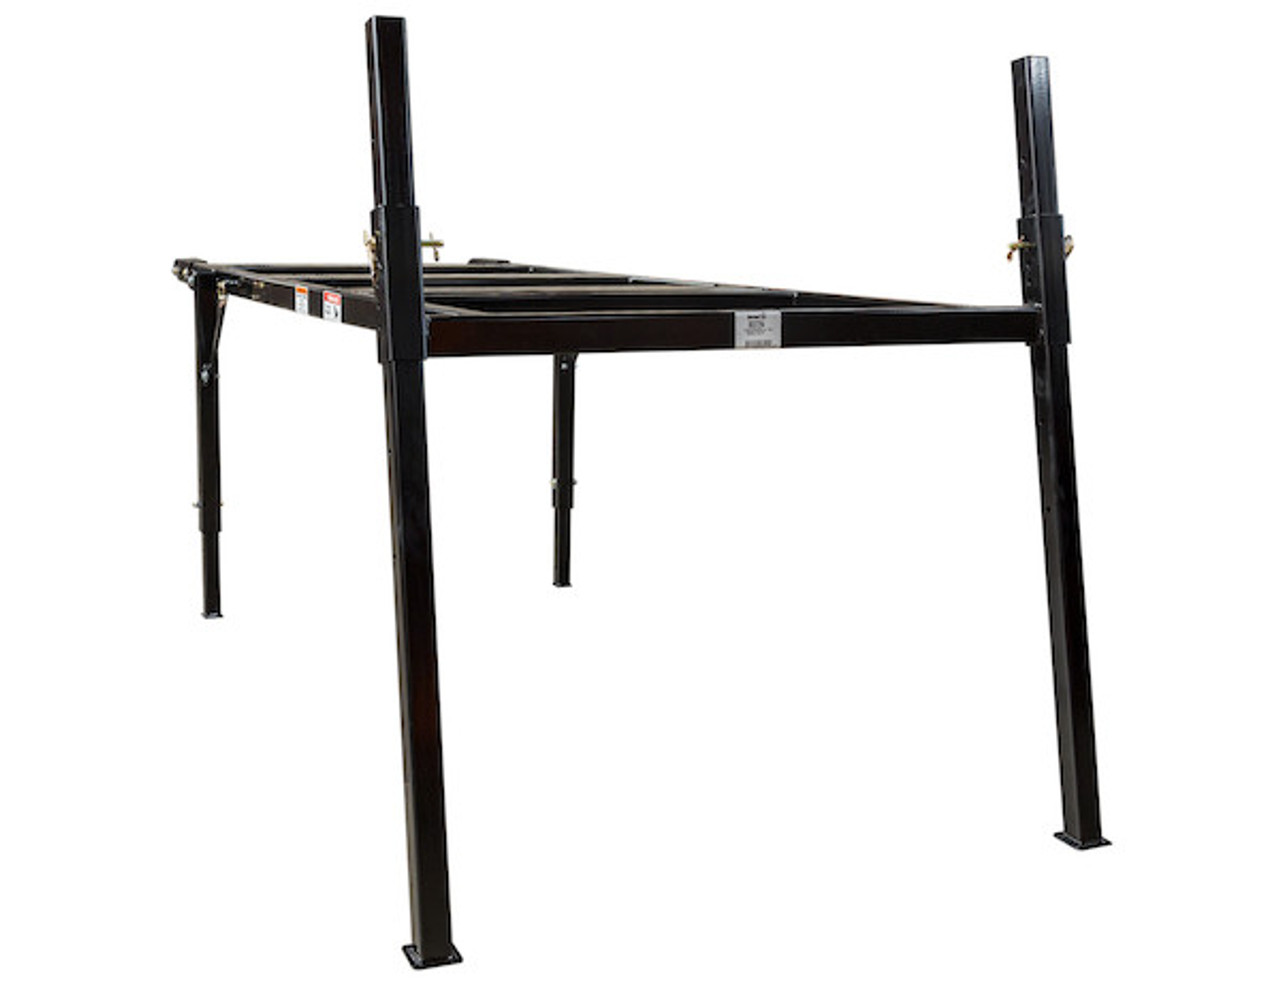 BUYERS 3037294 9-10 Foot Mid-Size Black Powder-Coated Spreader Stand for SaltDogg Spreader 1